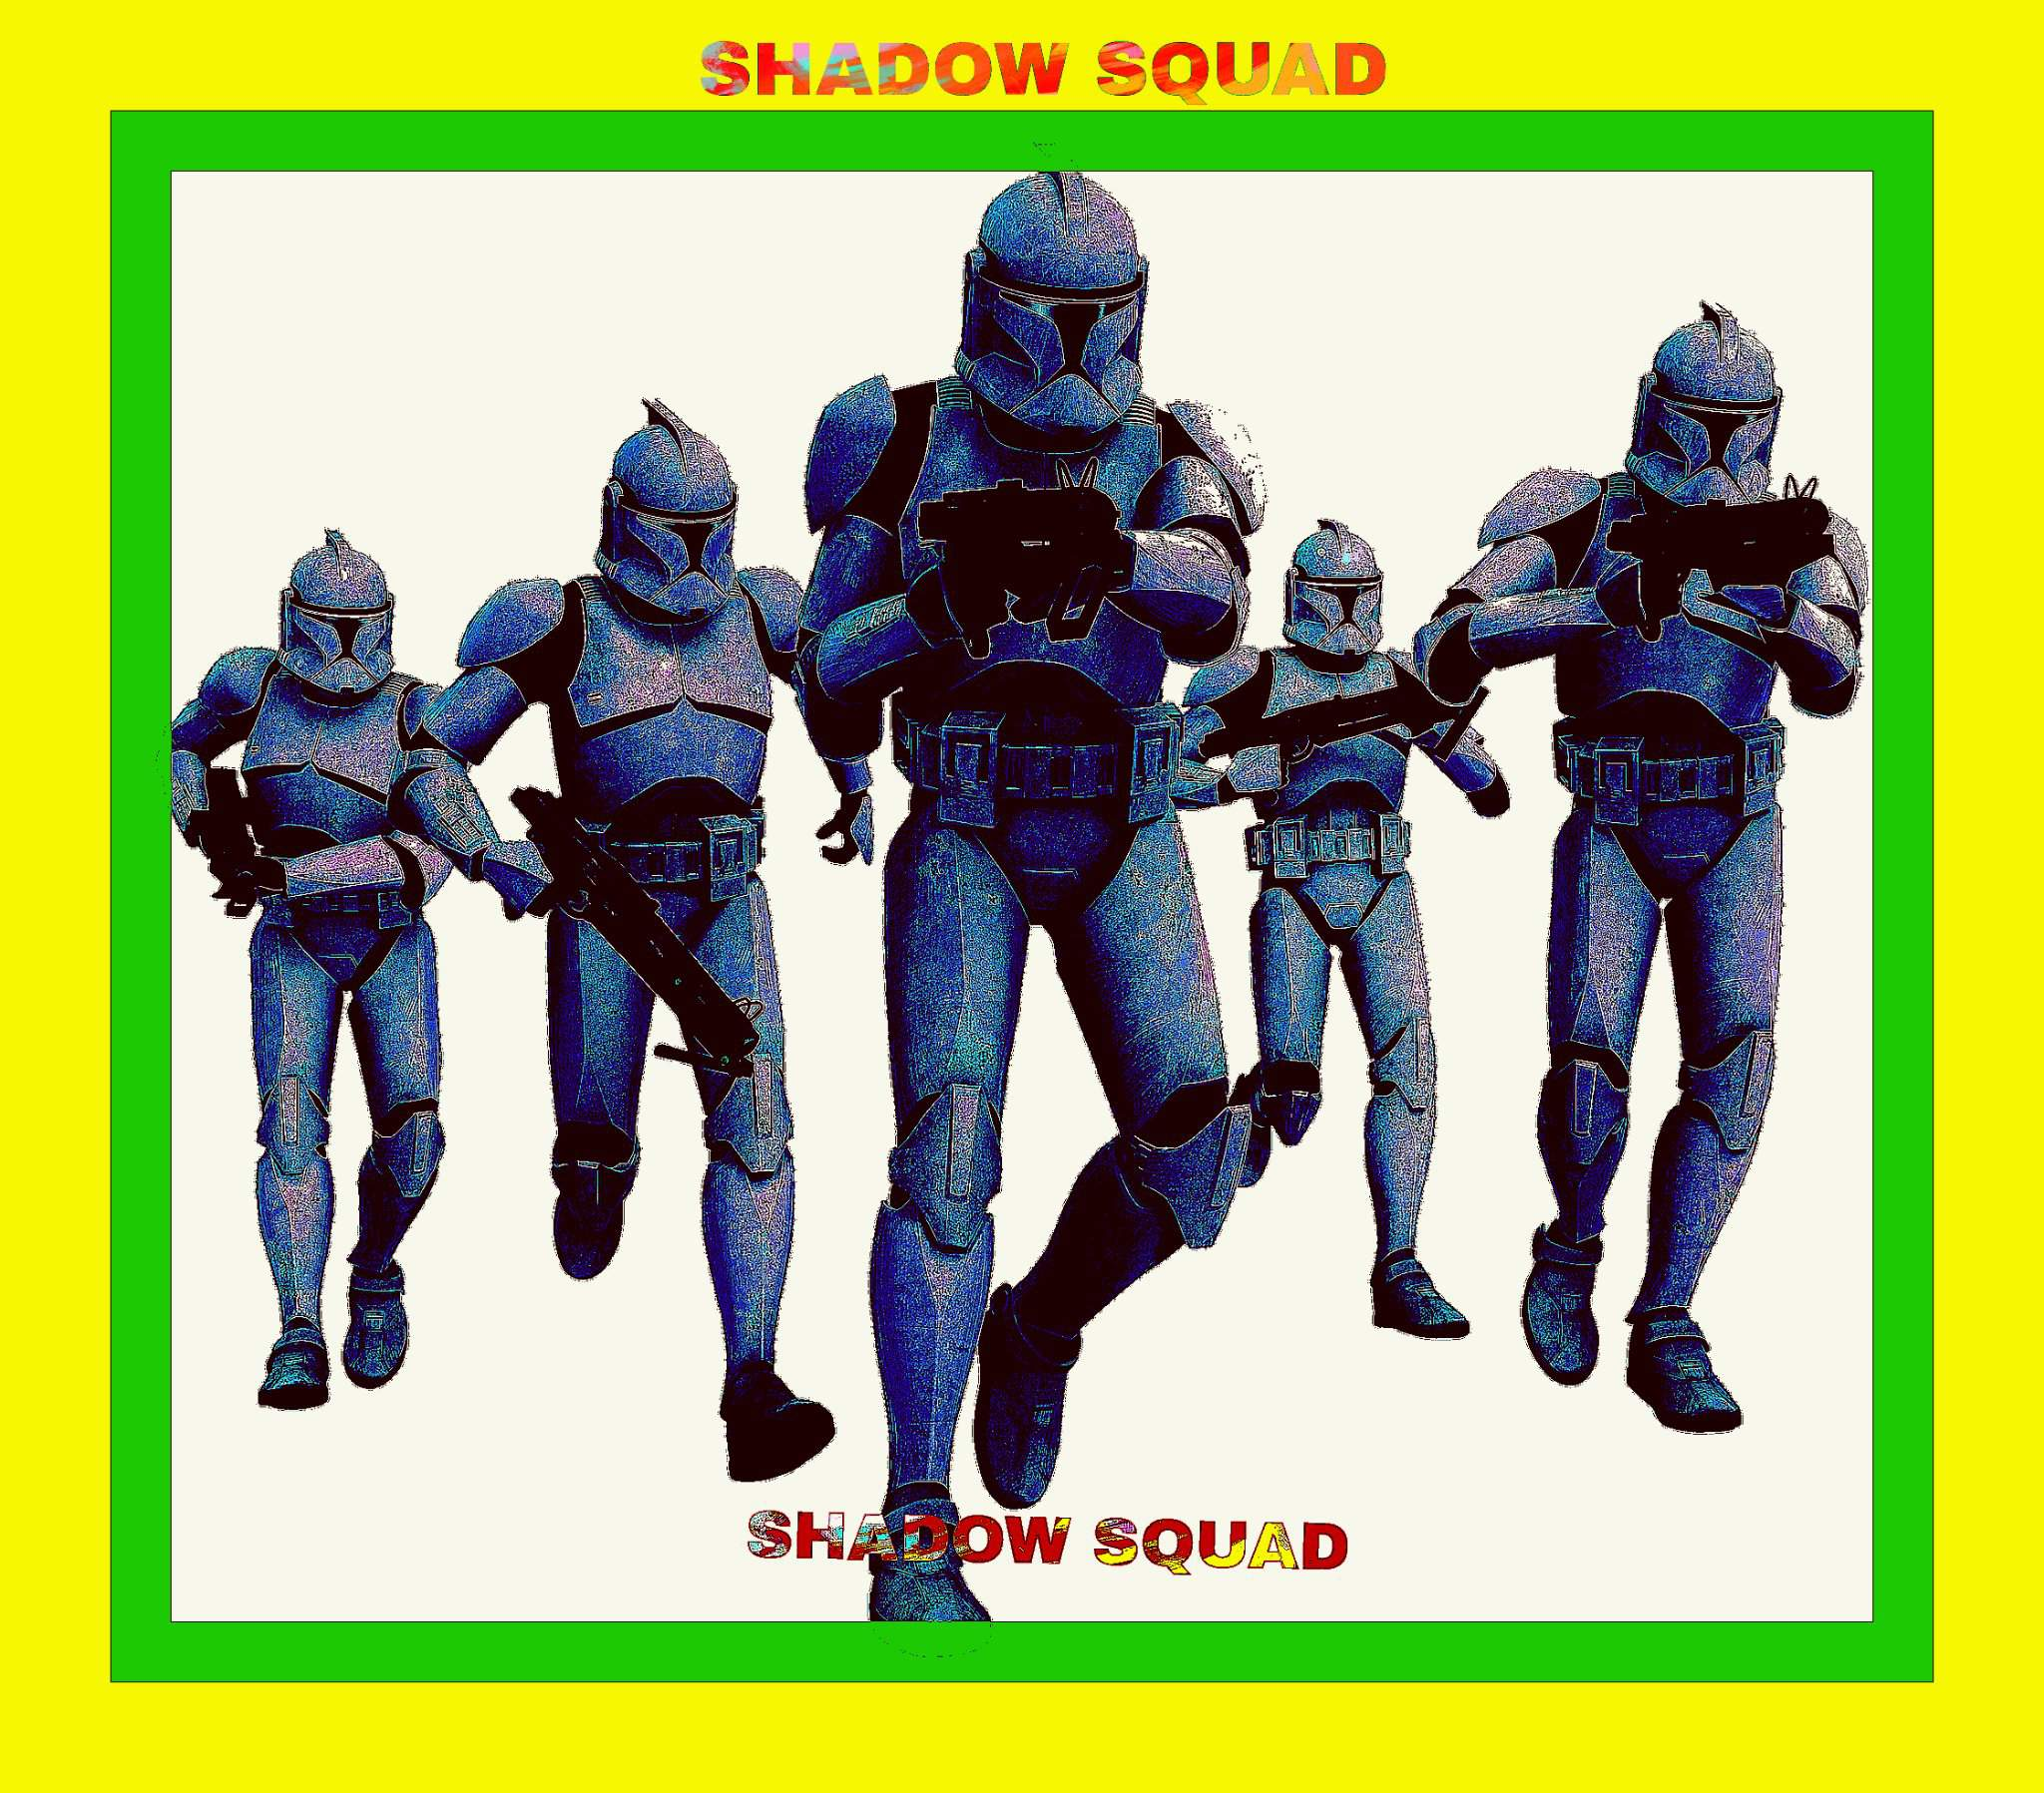 Clone Shadow Squad Wallpaper Star Wars Amino Find the perfect grunge wallpaper stock illustrations from getty images. amino apps